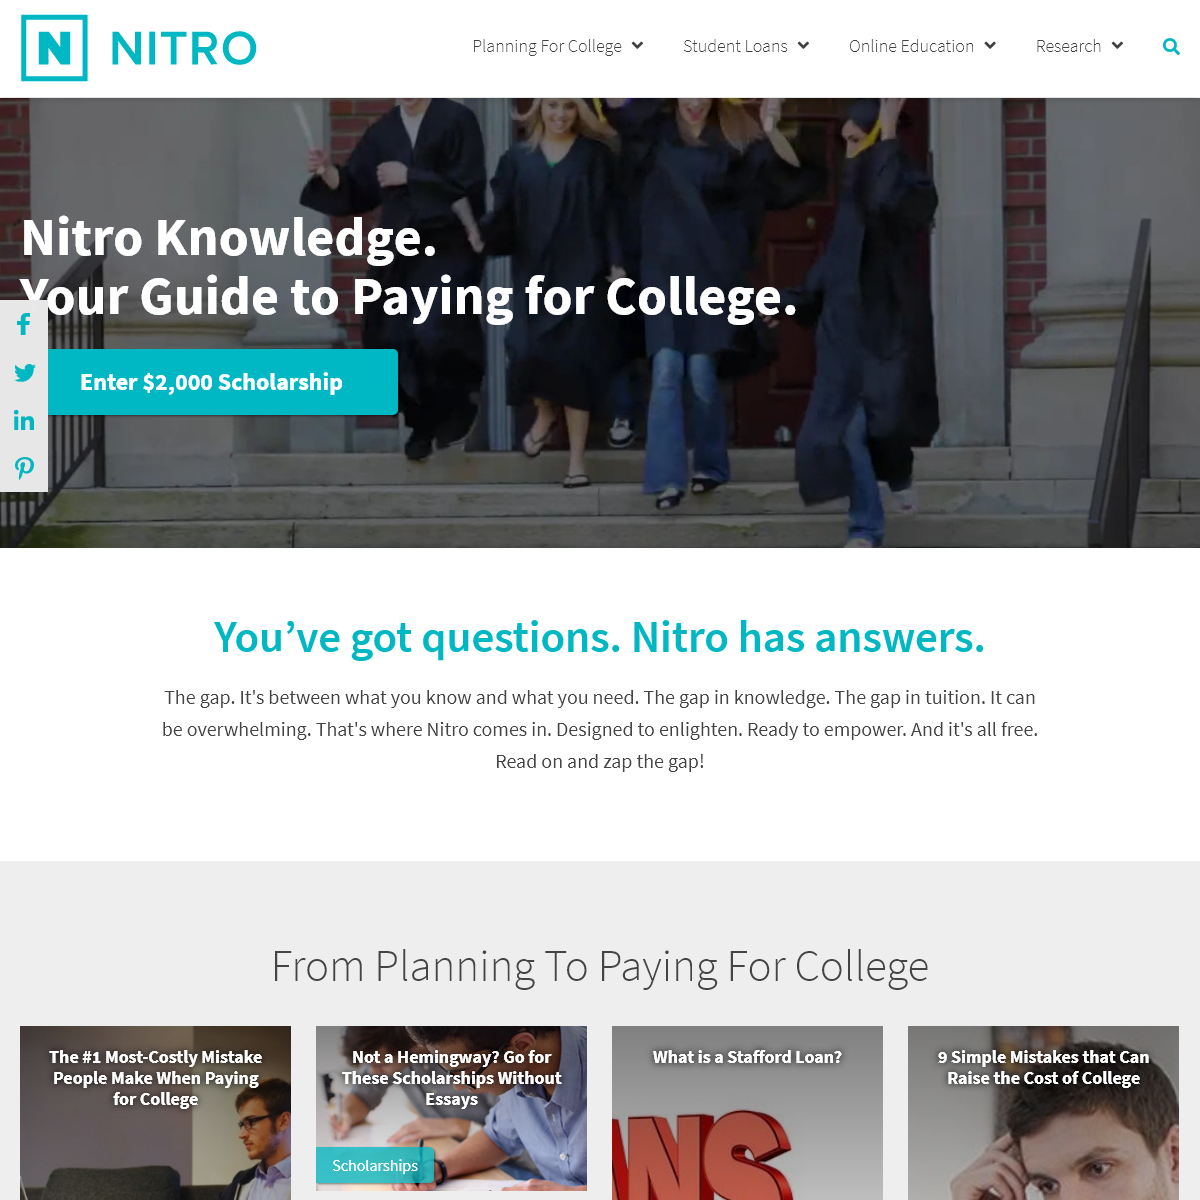 How to Pay For College- The Complete Guide from Nitro